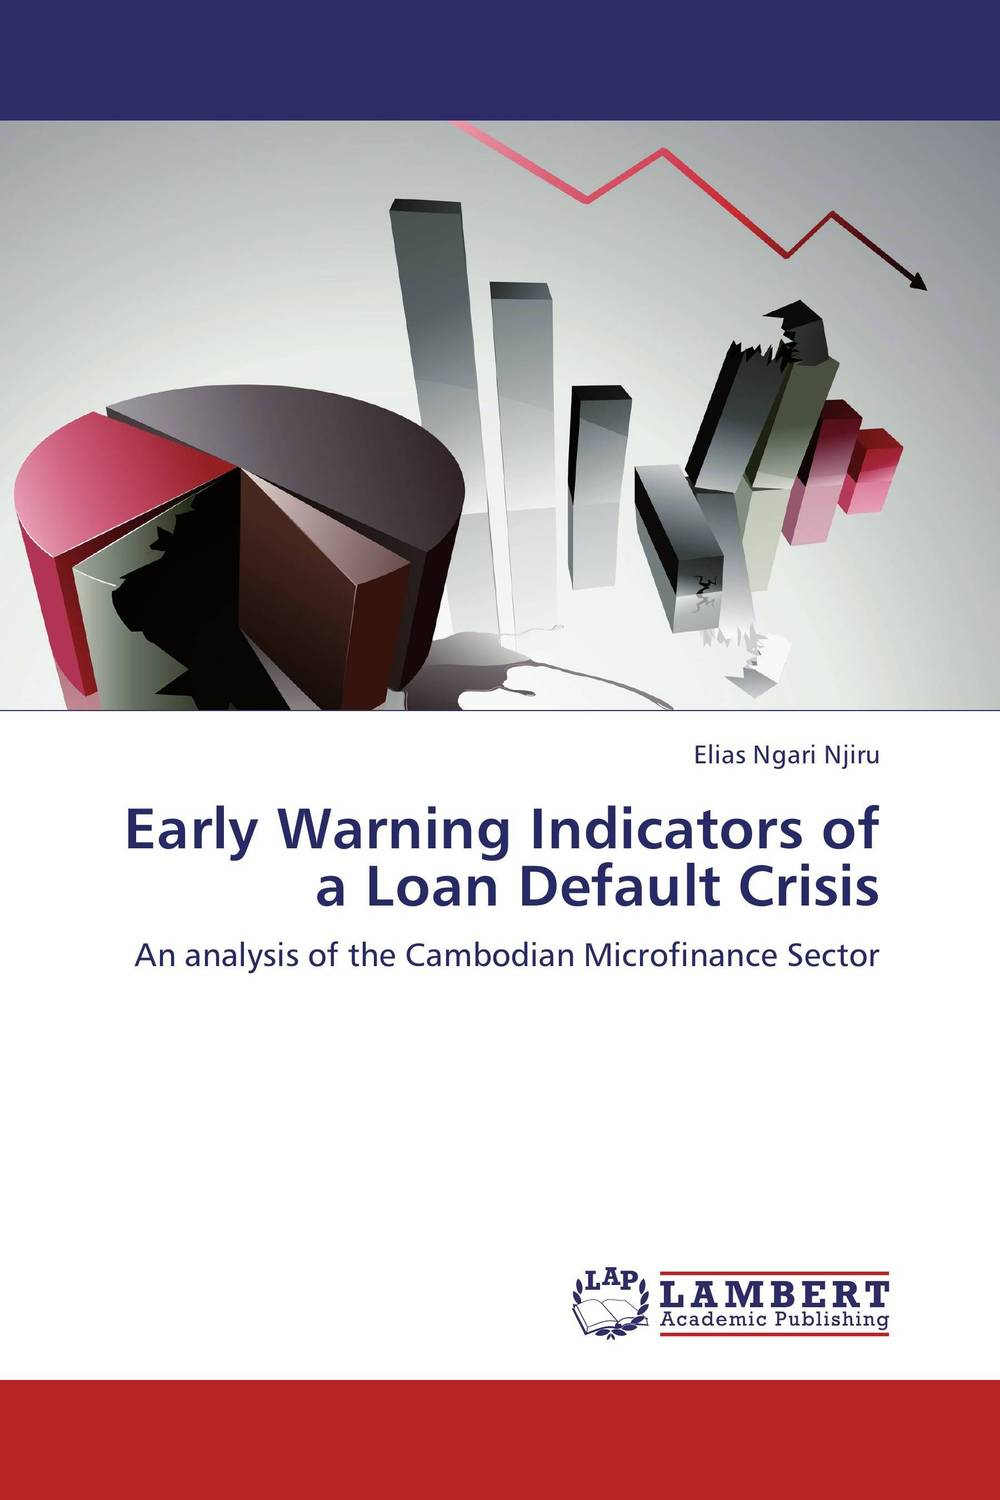 Early Warning Indicators of a Loan Default Crisis